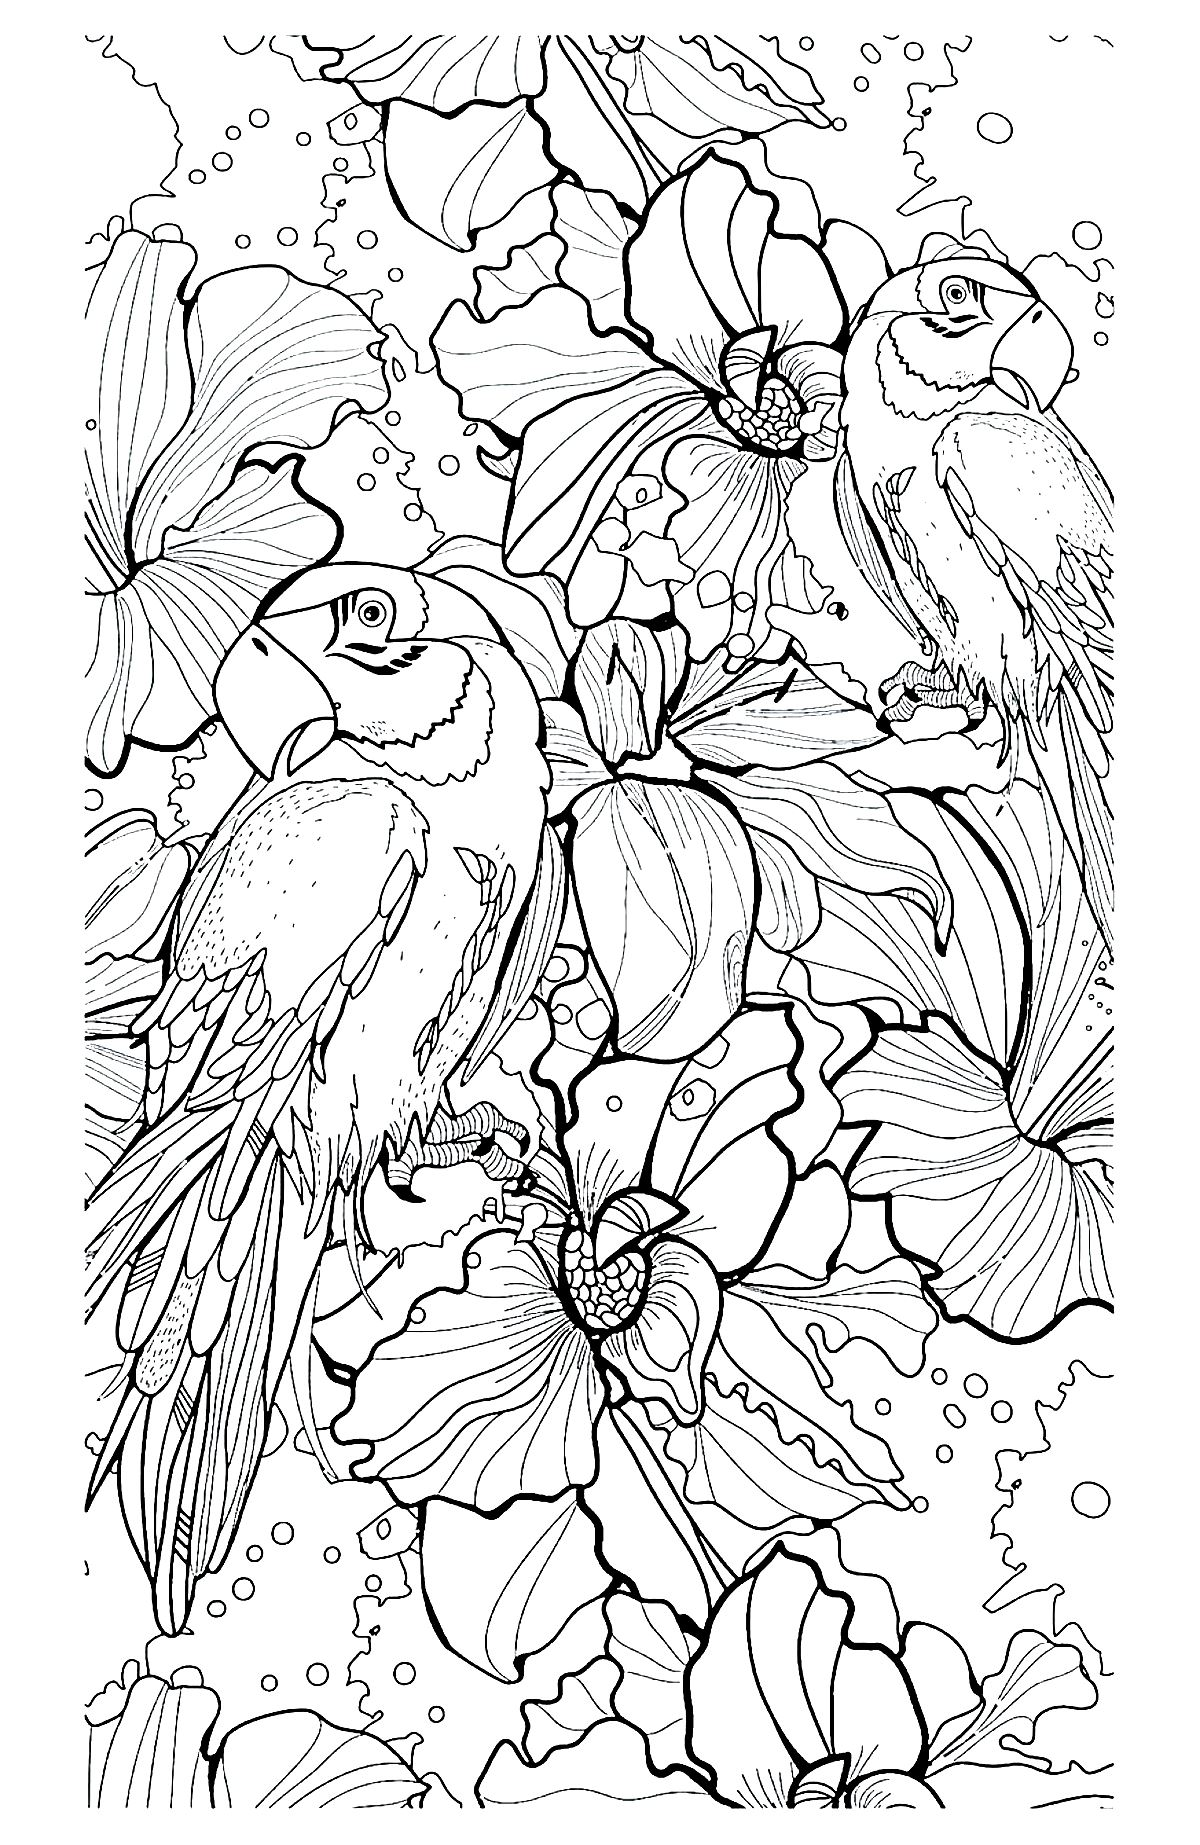 Printable coloring pages rainforest animals - Printable Coloring Pages Rainforest Animals 25